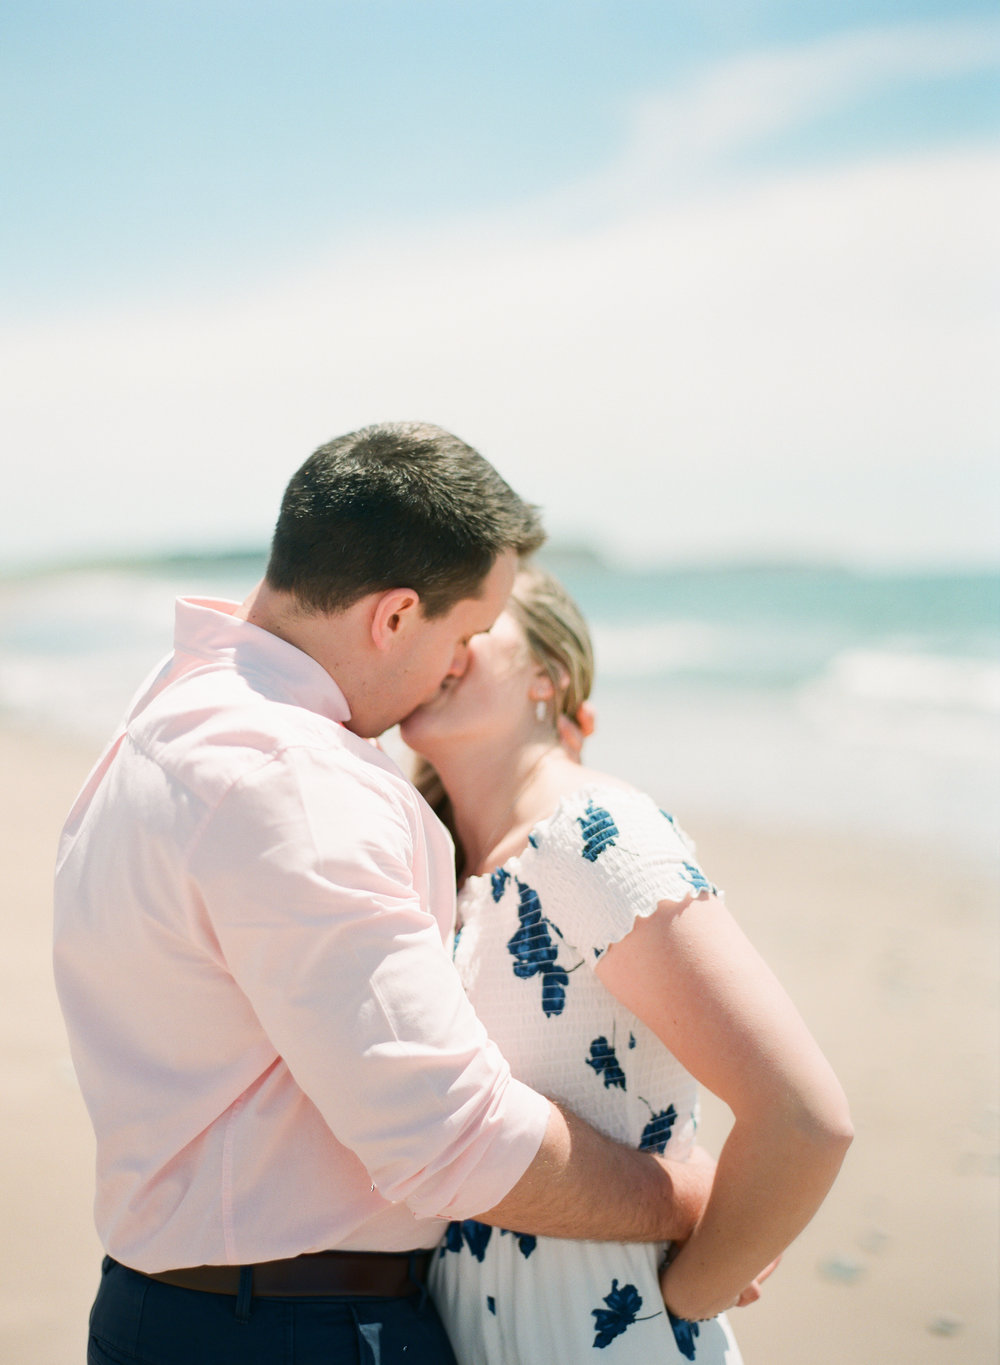 Jacqueline Anne Photography-Melissa and Daniel - Contax 645 - Beach Full Sun-26.jpg